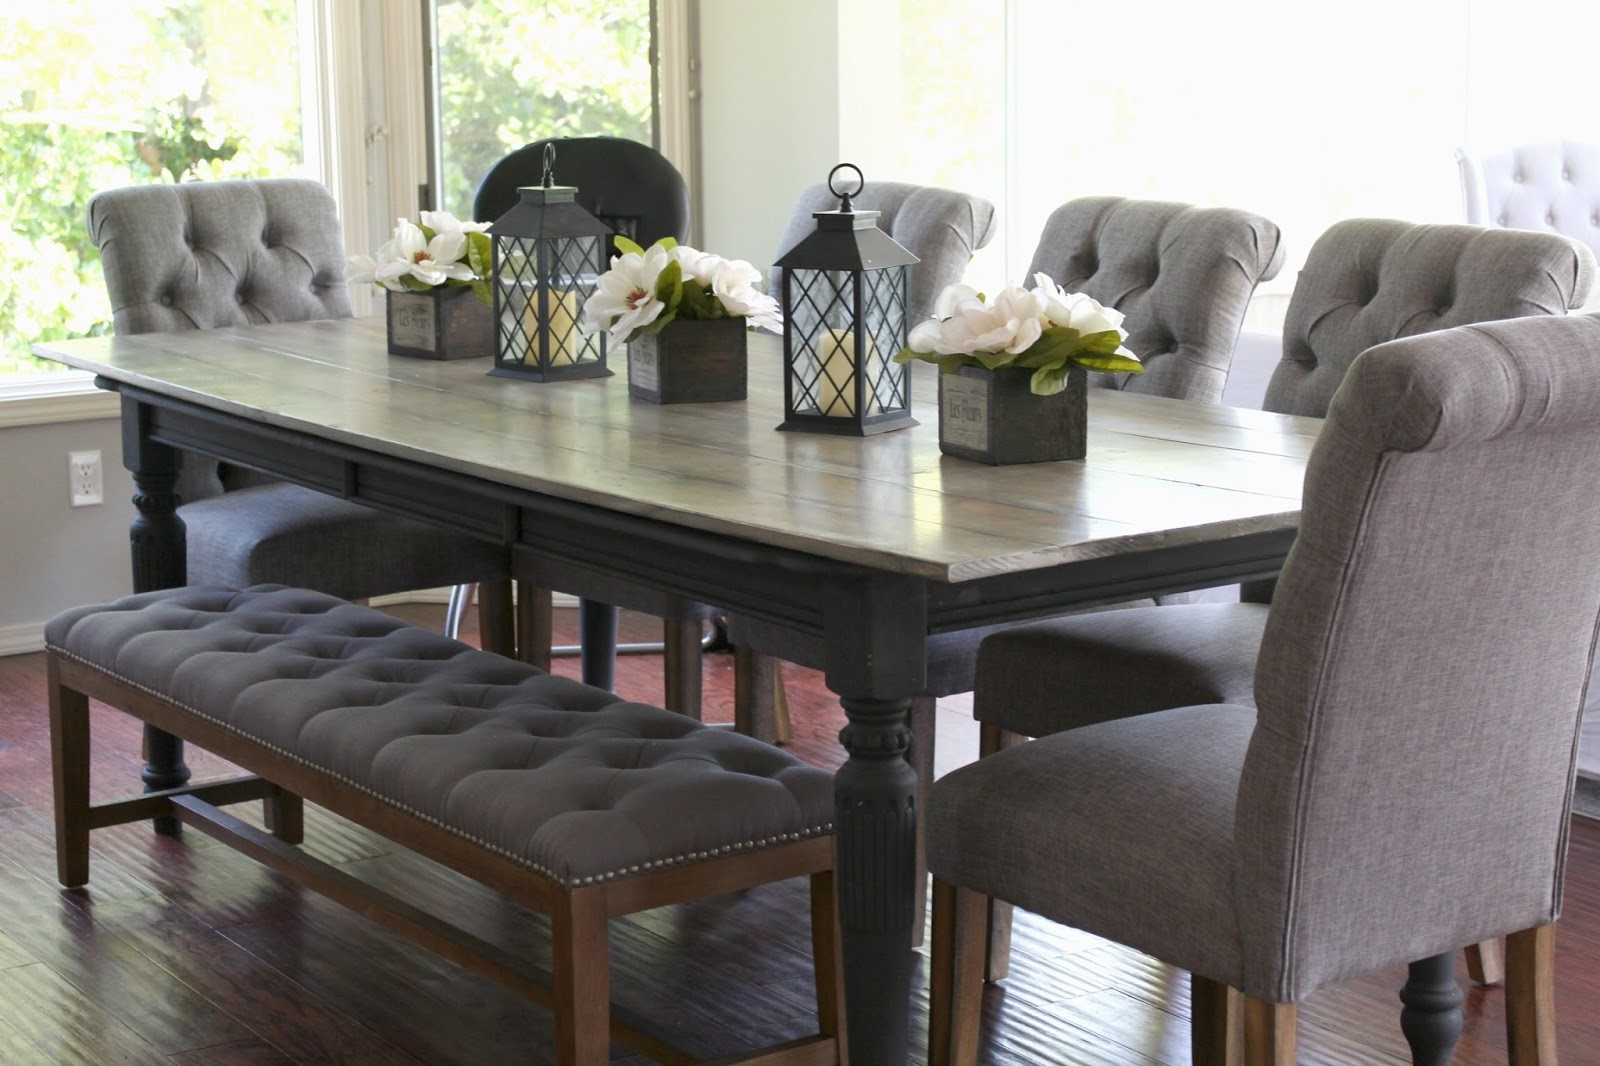 Rose & Co Blog: Our 10 person 35 dollar DIY Dining Table